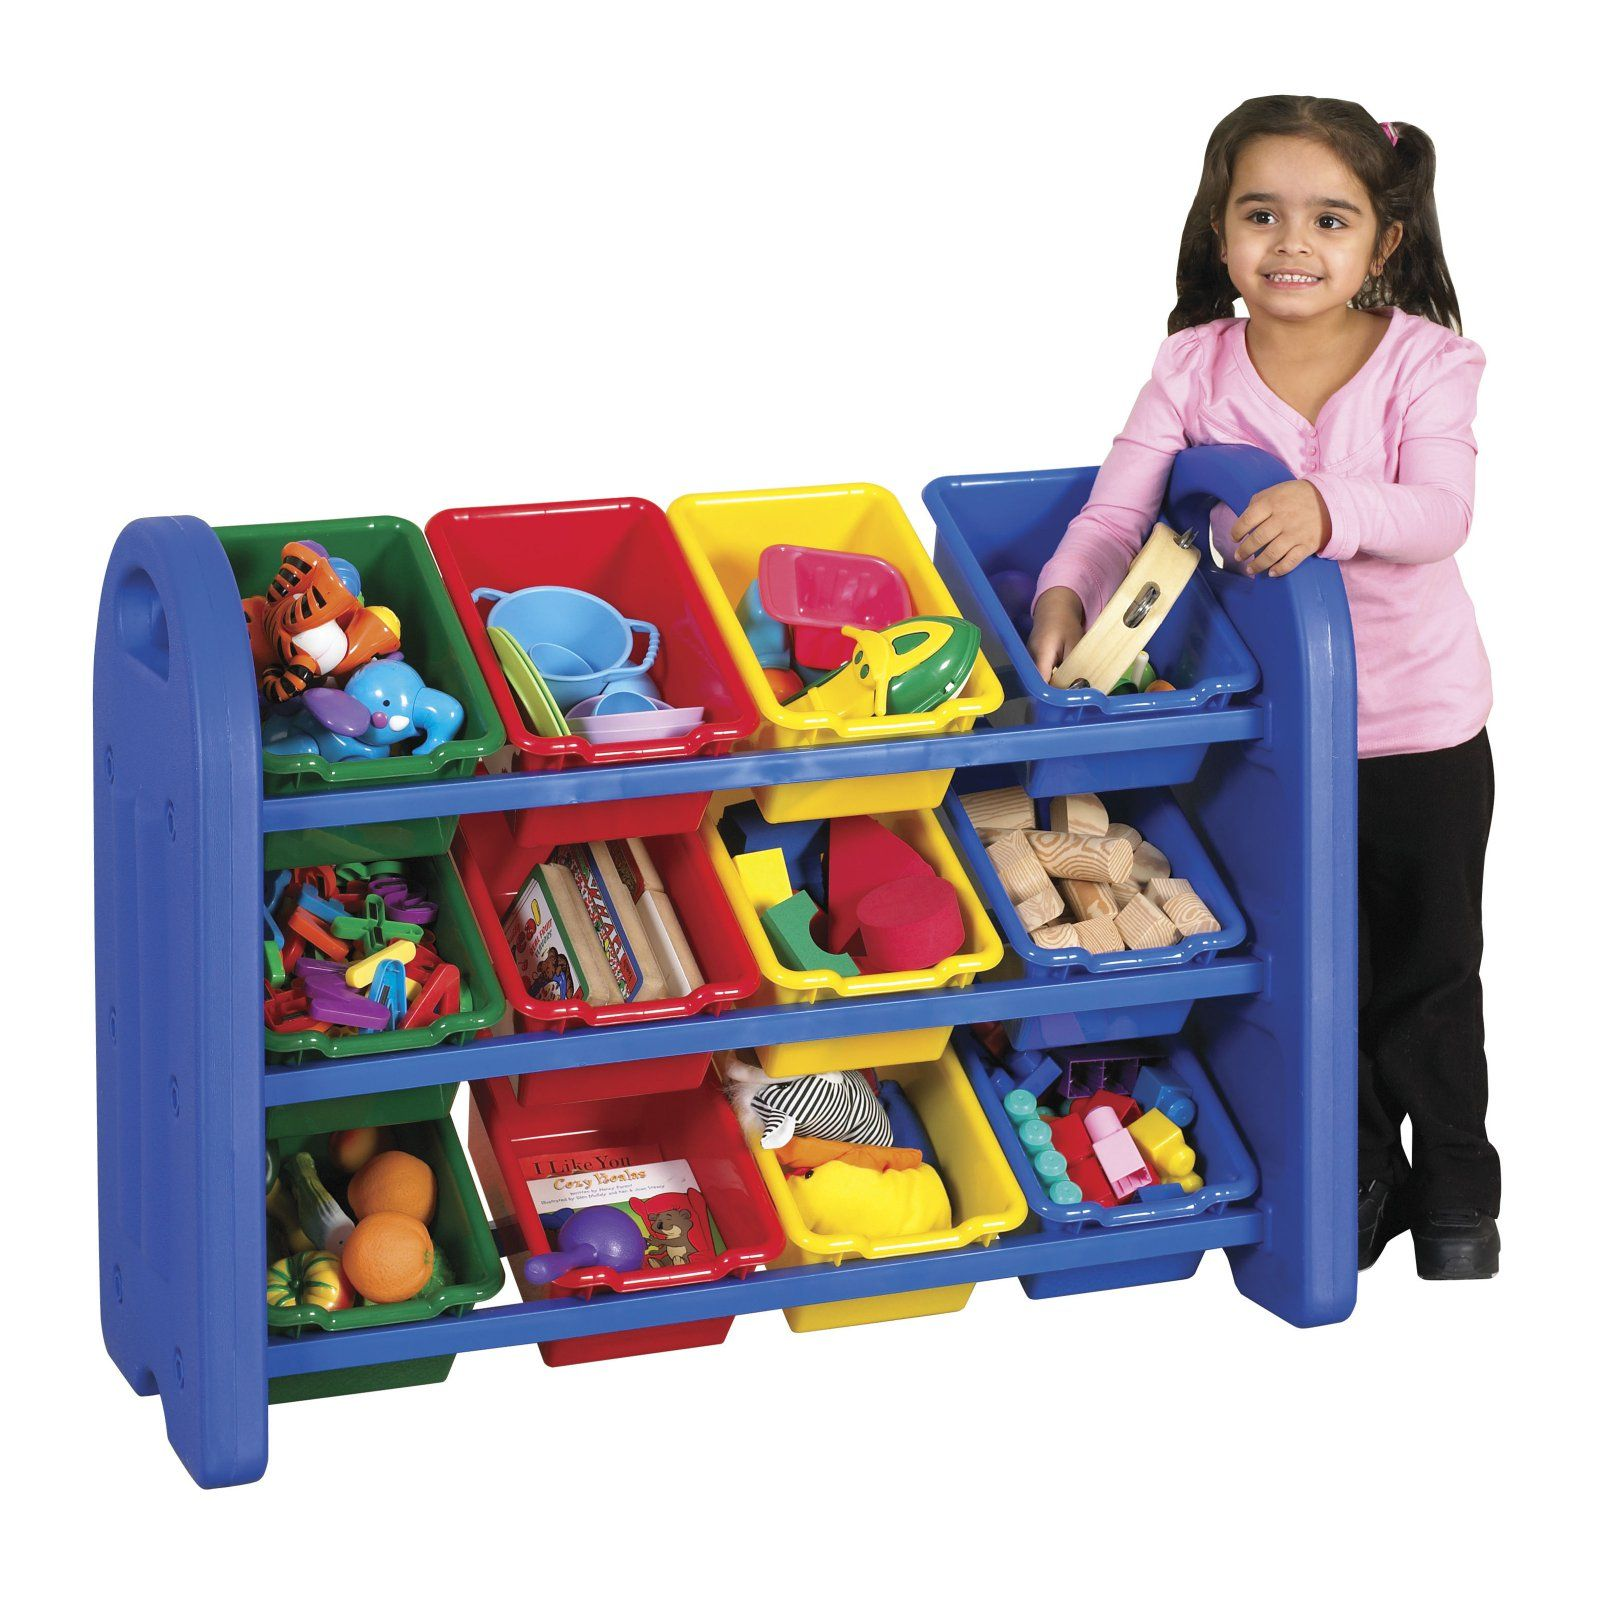 Ecr4kids 3 Tier Toy Storage Organizer 12 Bins Blue Red Yellow Green Kids Storage Bins Kids Storage